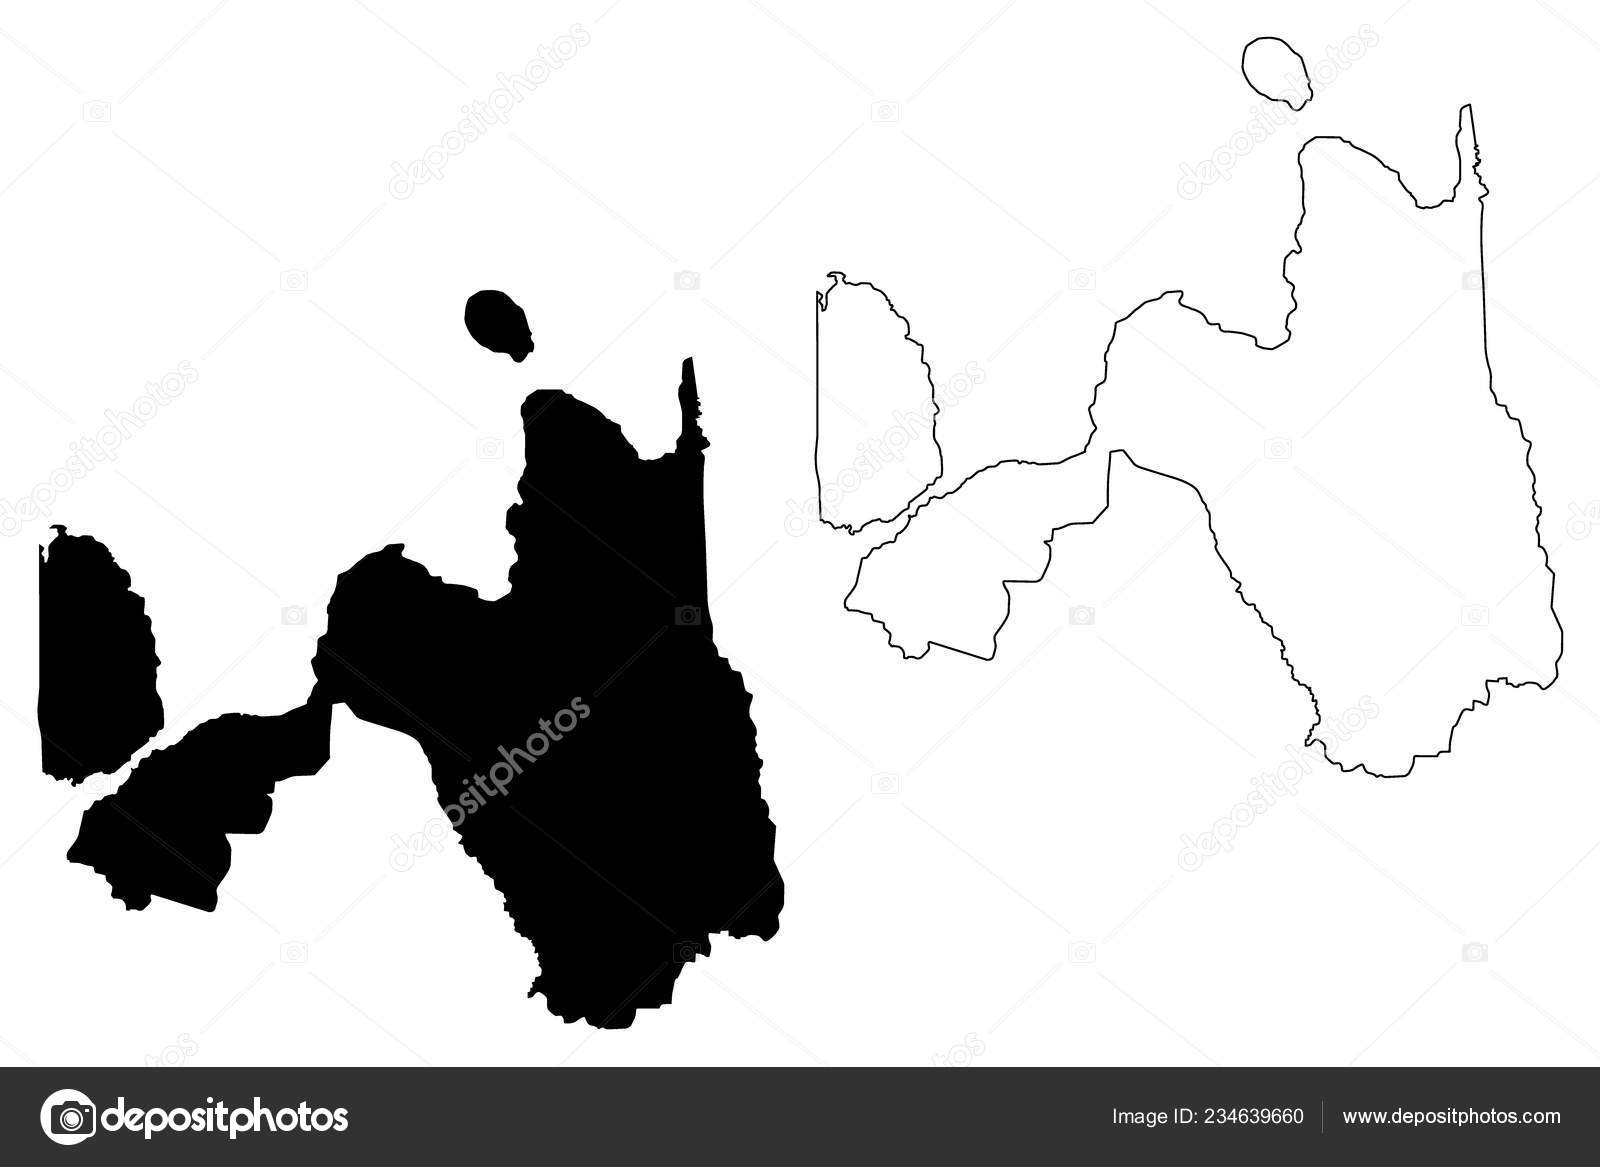 Northern Mindanao Region Regions Provinces Philippines Republic